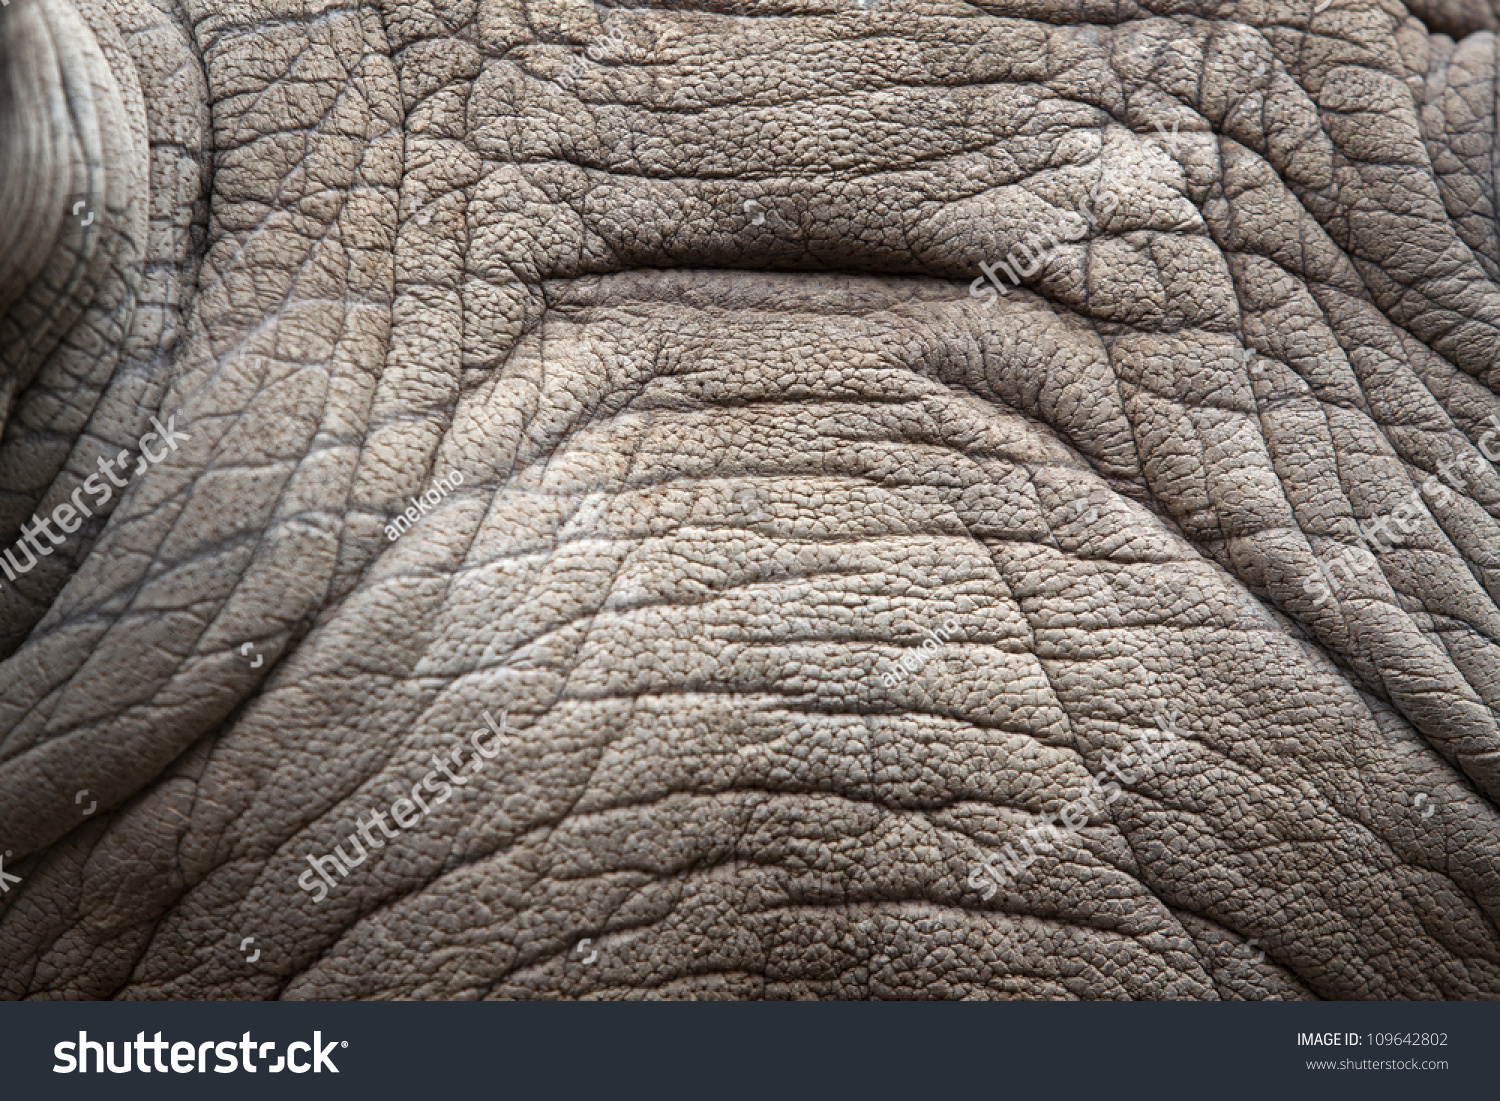 how to get a white background on rhino